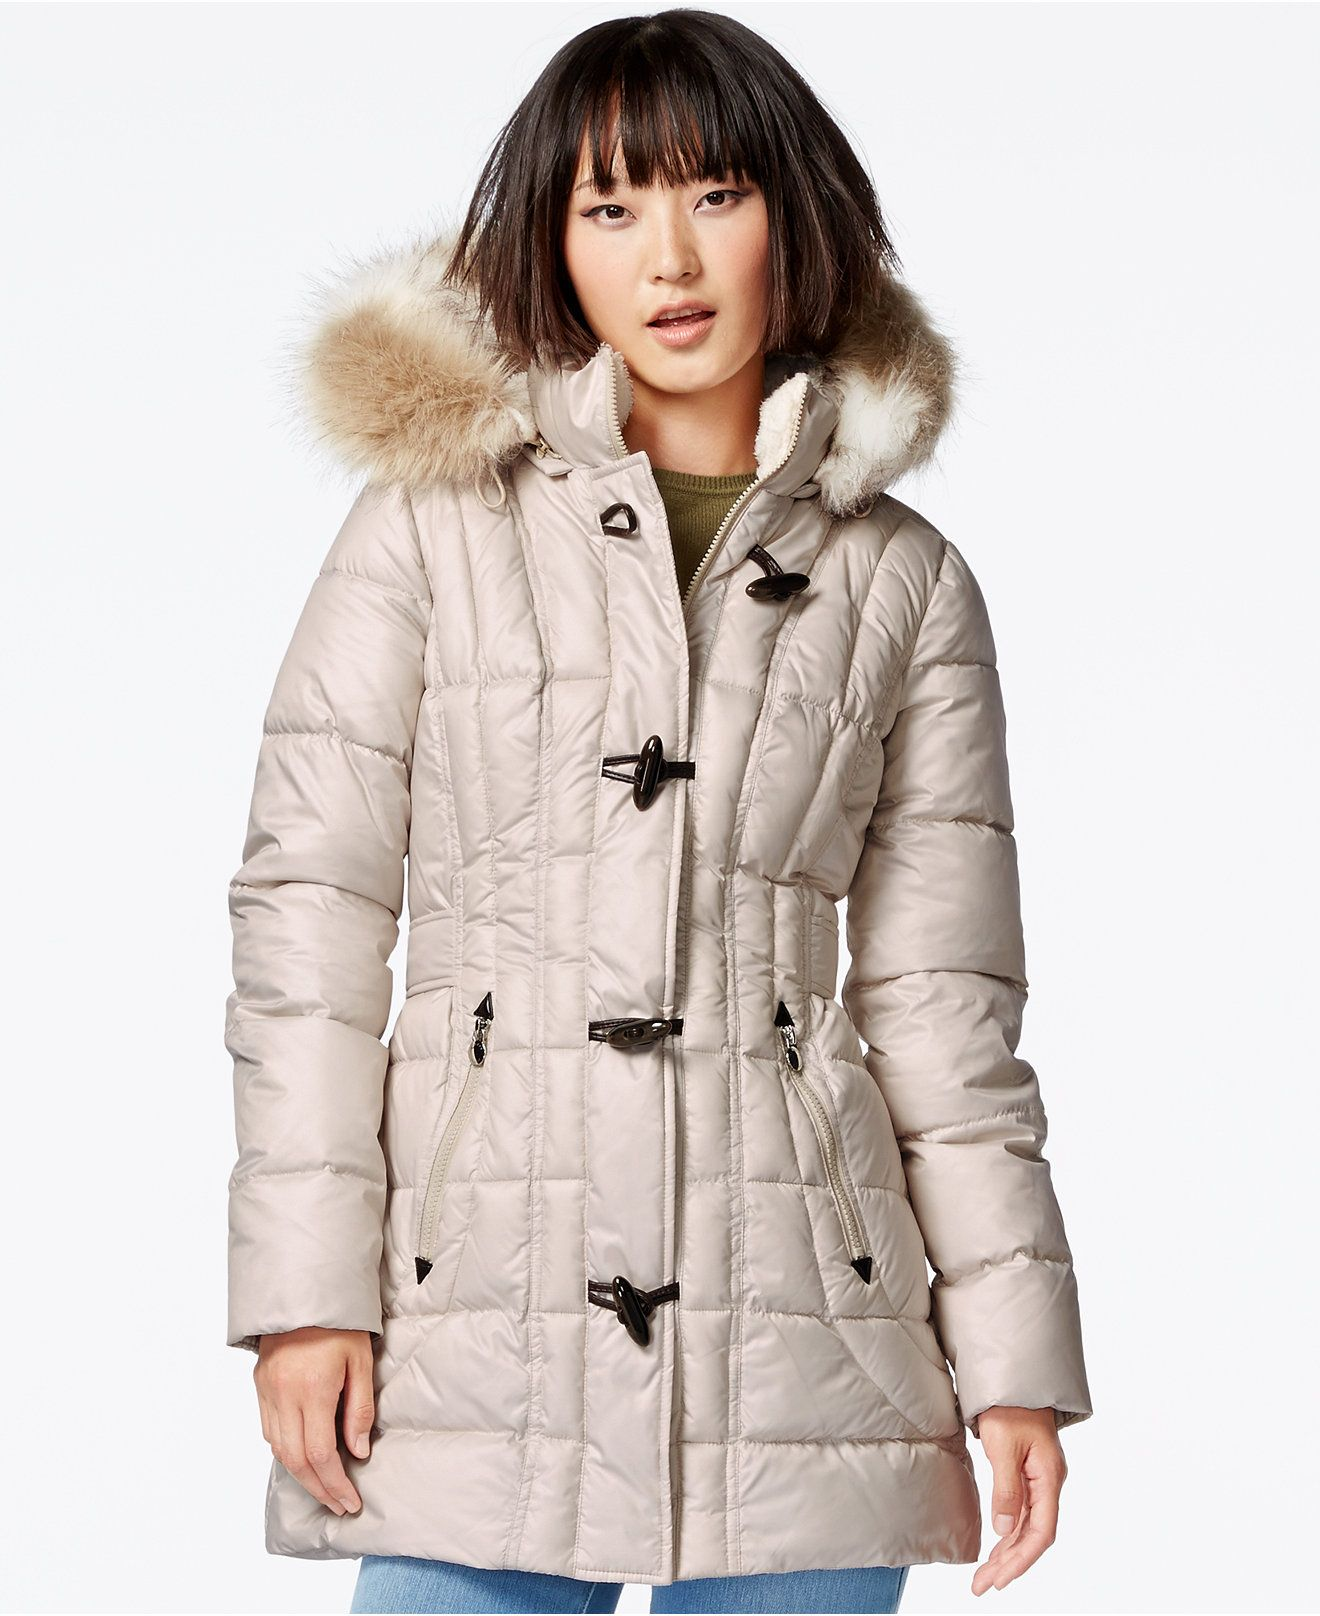 Laundry By Design Faux Fur Trim Toggle Front Puffer Coat Sale Clearance Women Macy S Puffer Coat Pink Puffer Coat Coats For Women